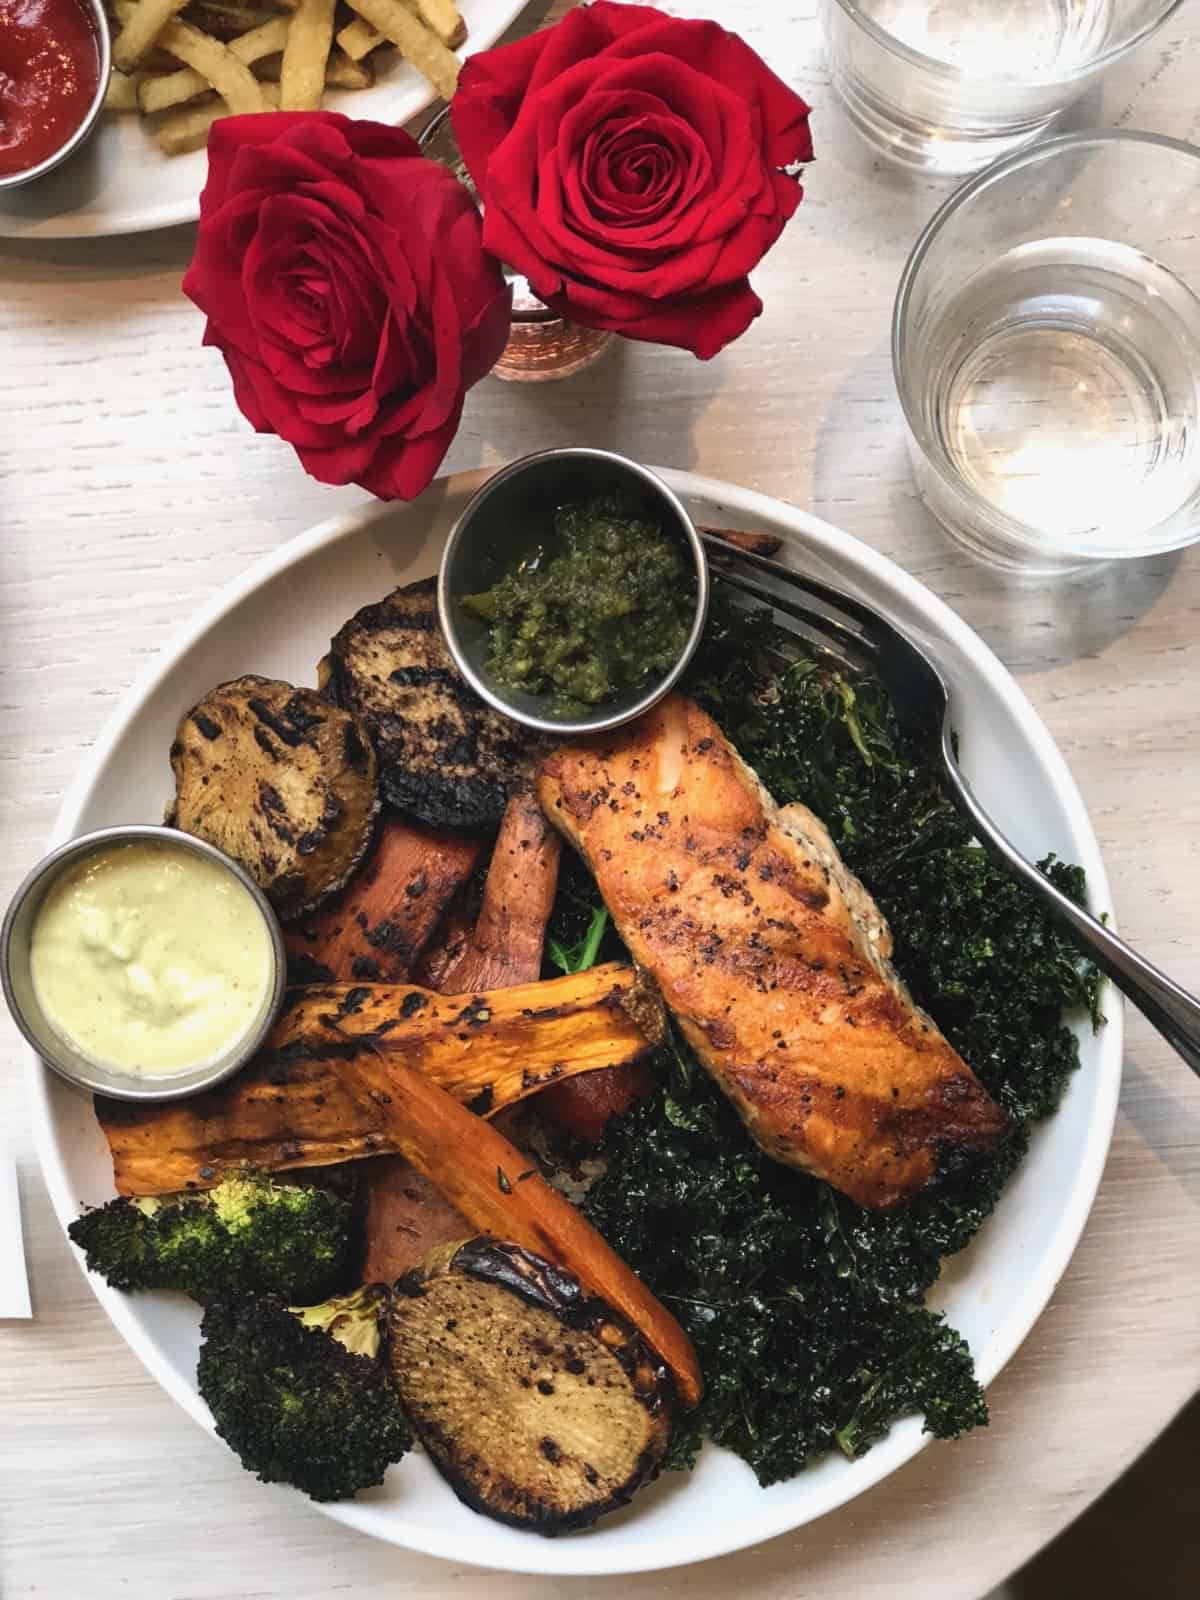 A table of a bowl of crispy kale, roasted veggies, and salmon with two sauces on the side, two red roses, and a glass of water